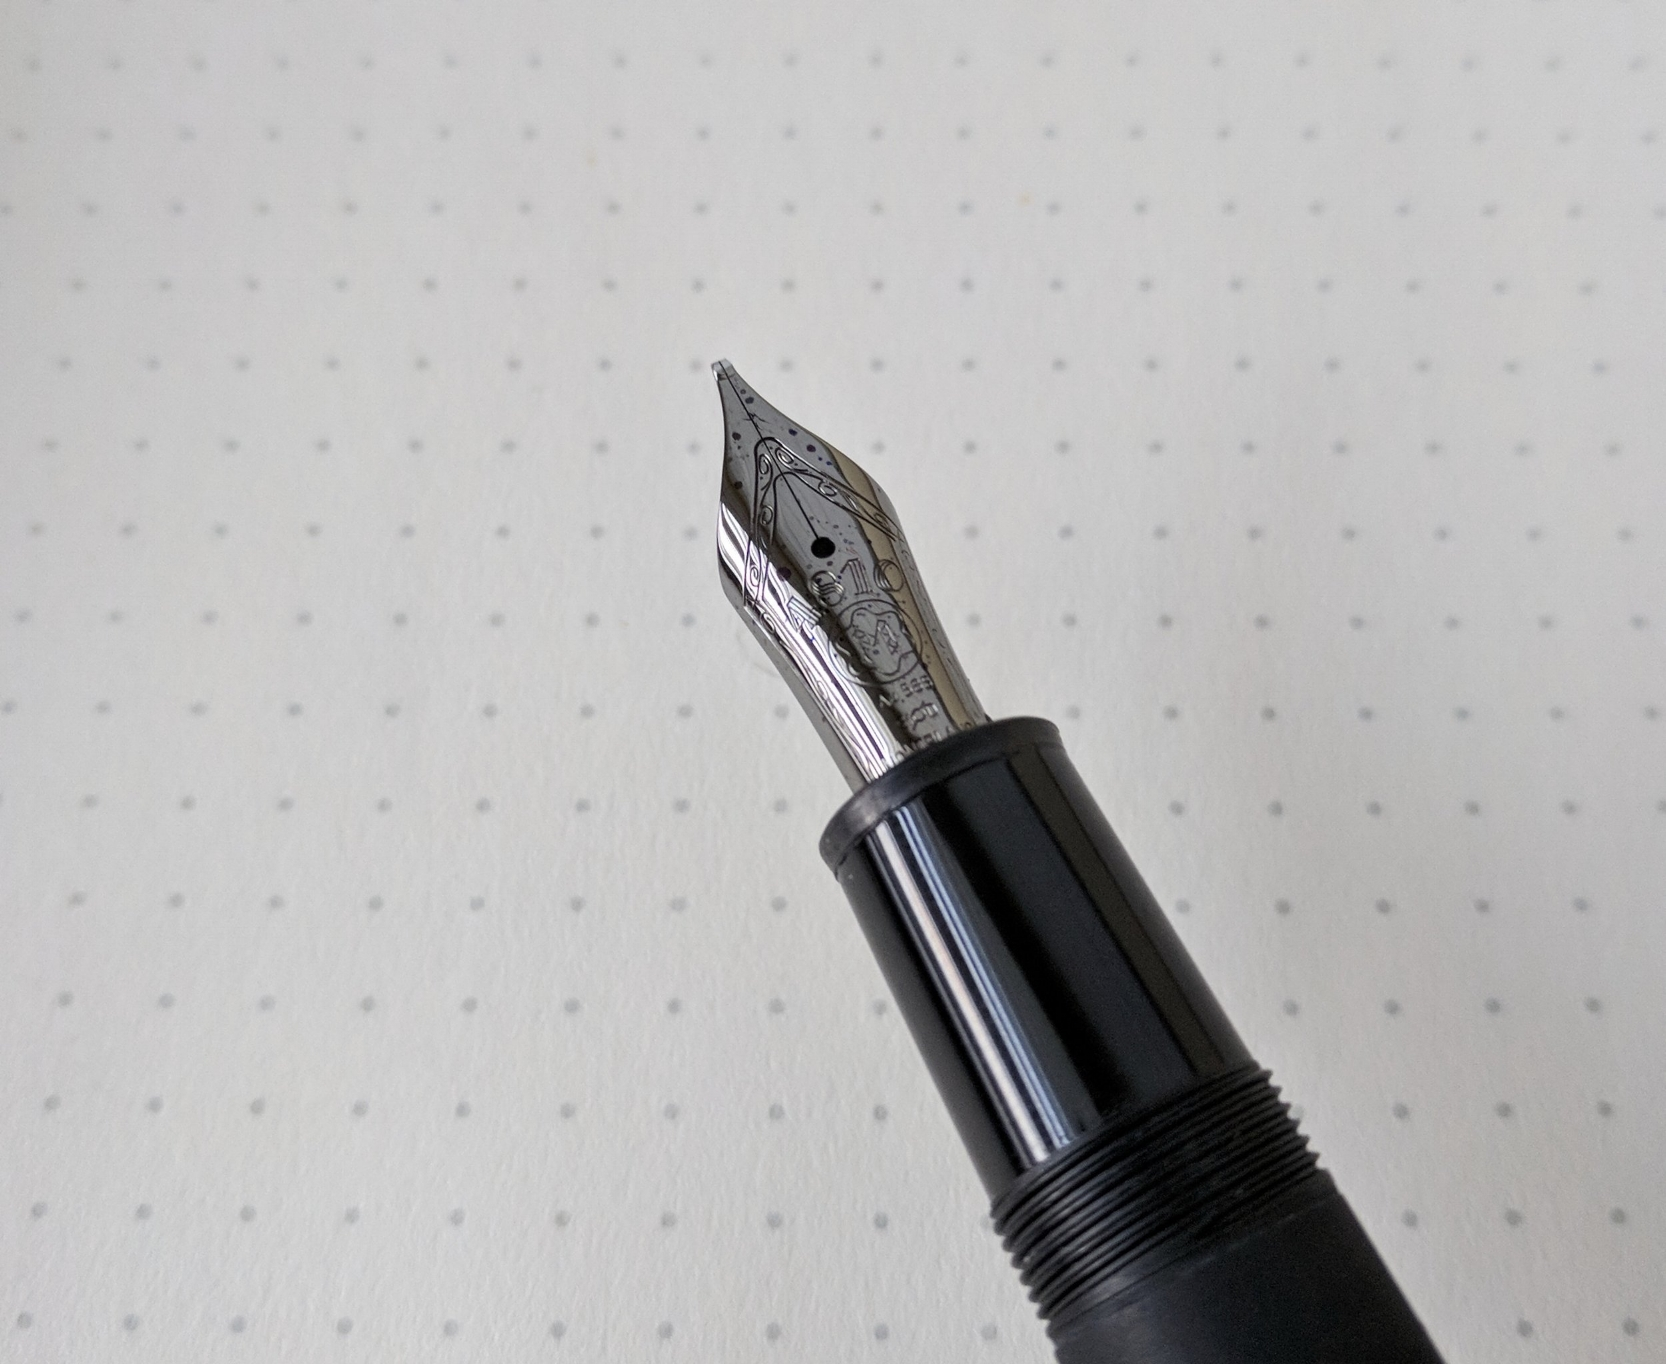 The ruthenium plated nib on my Montblanc 146 Ultra Black.